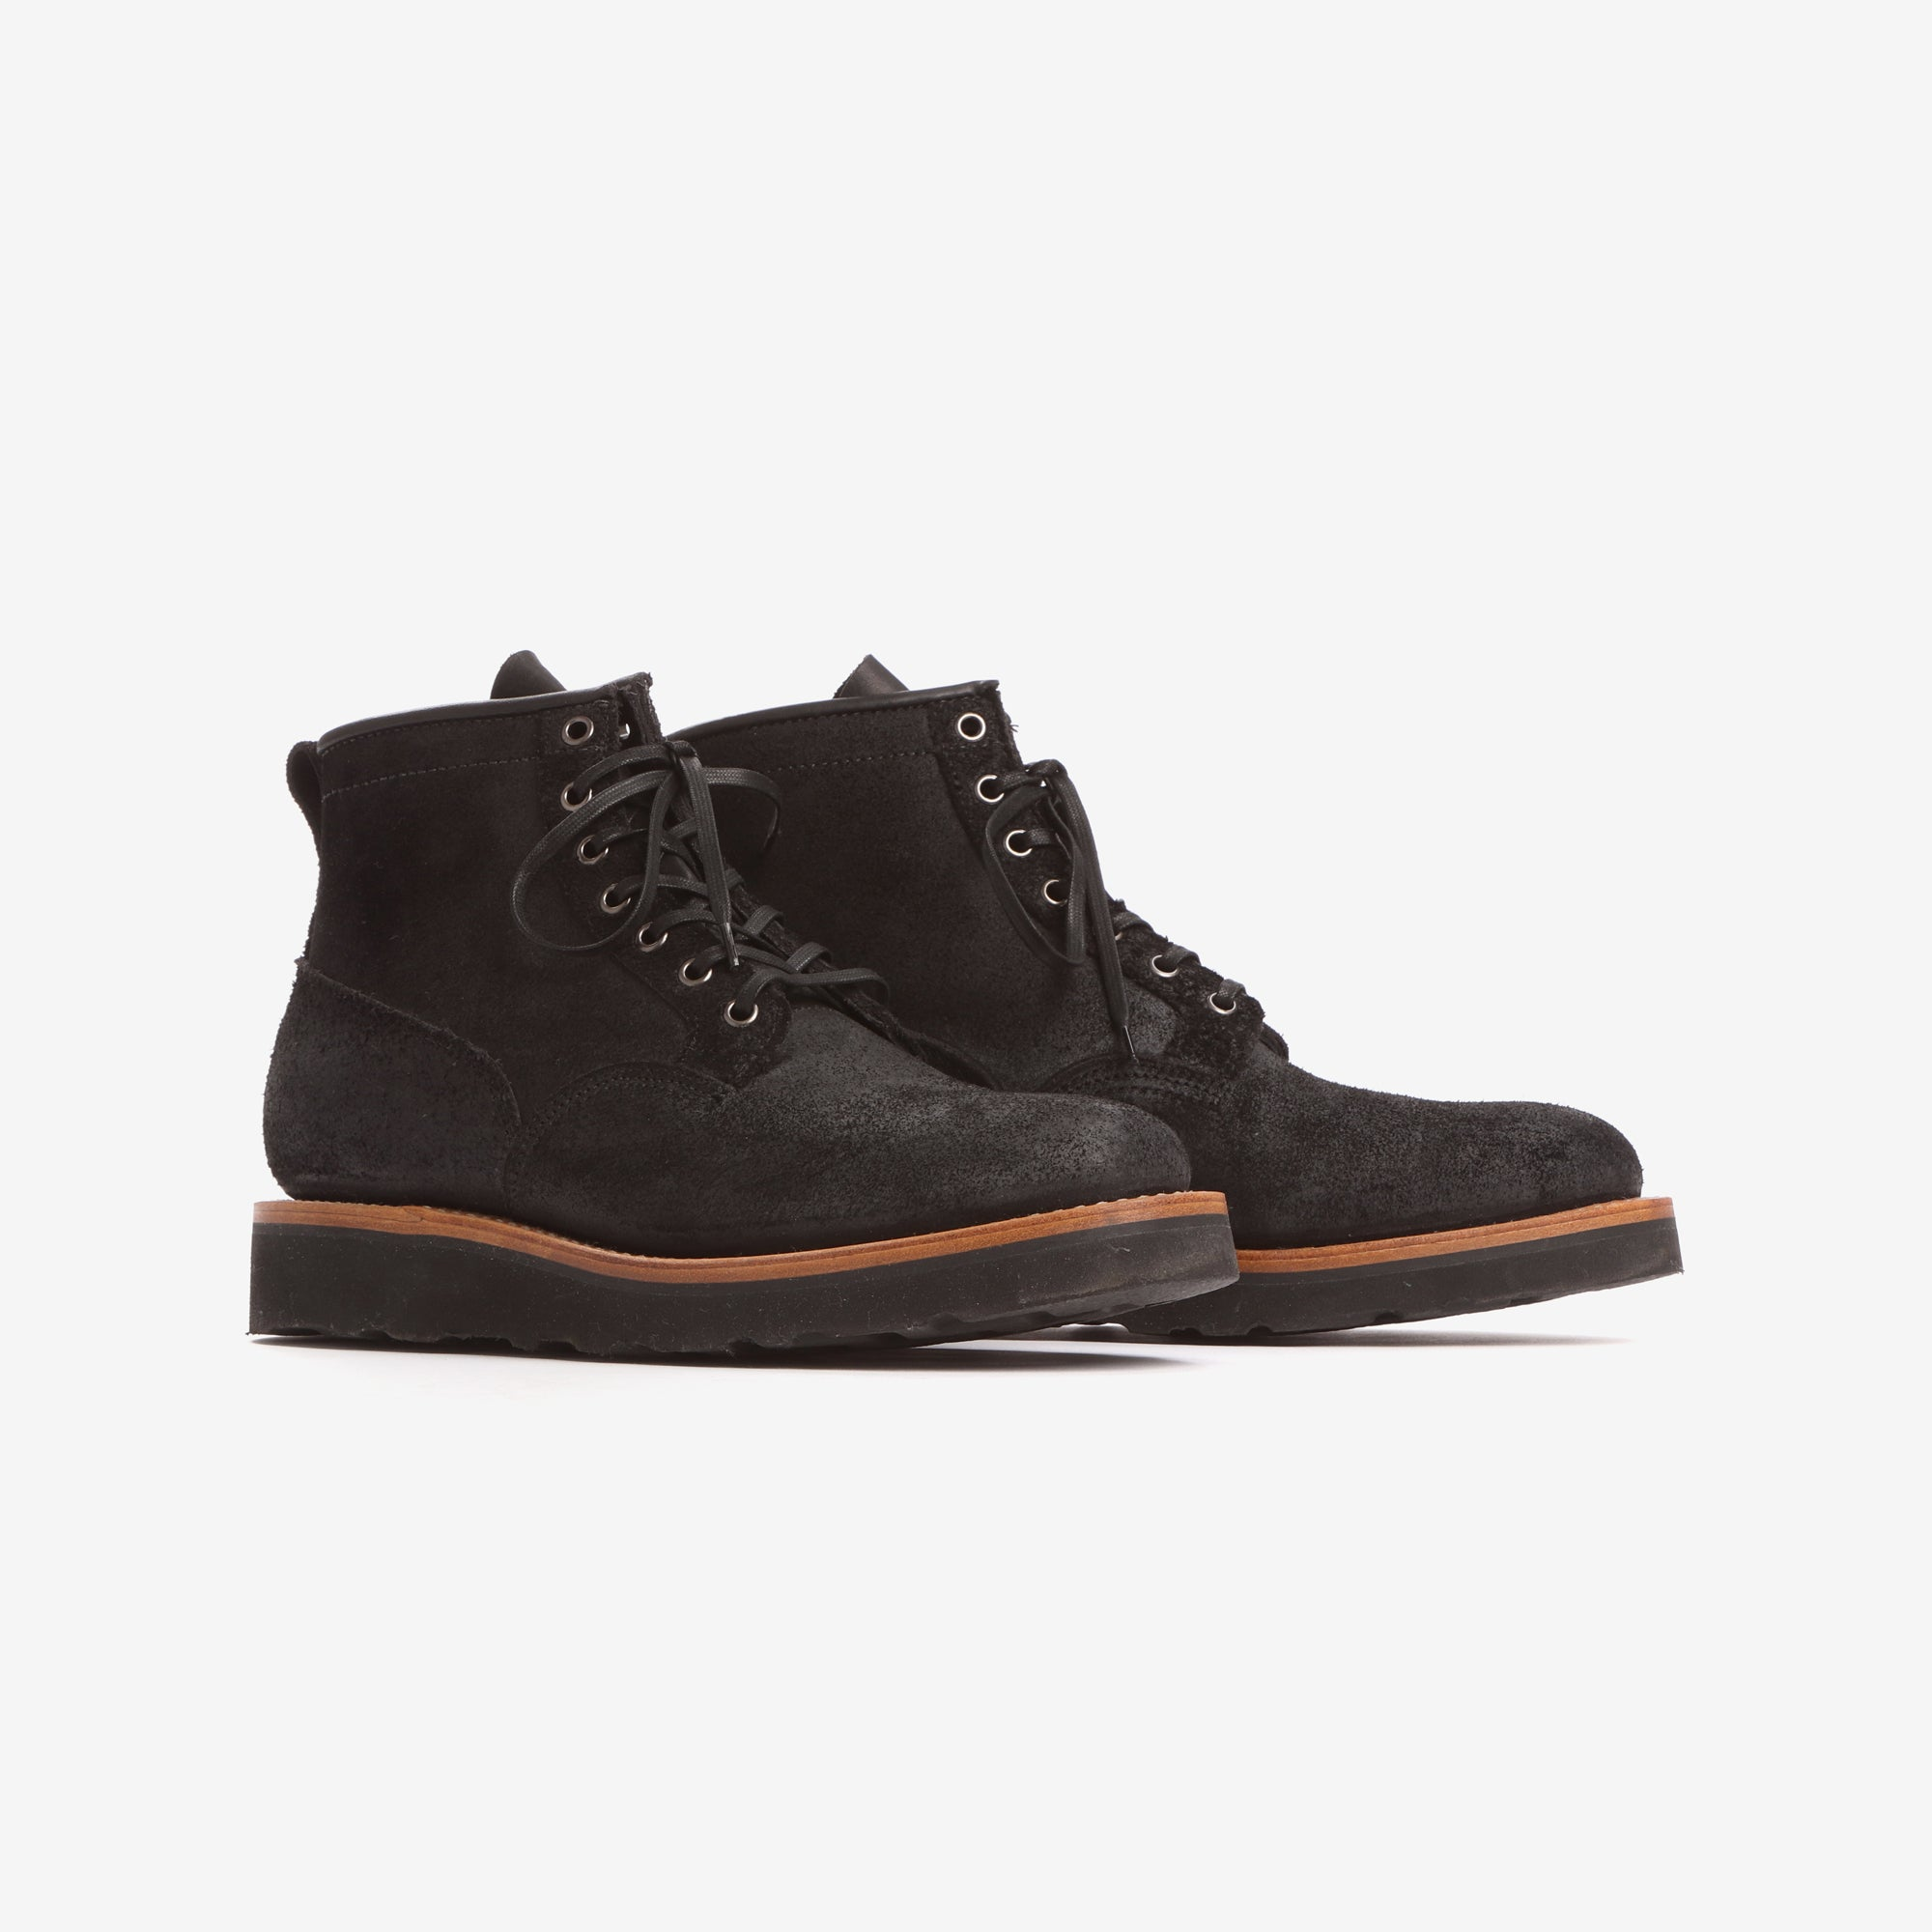 Viberg Boot x Mr Porter Rough Out Scout Boots